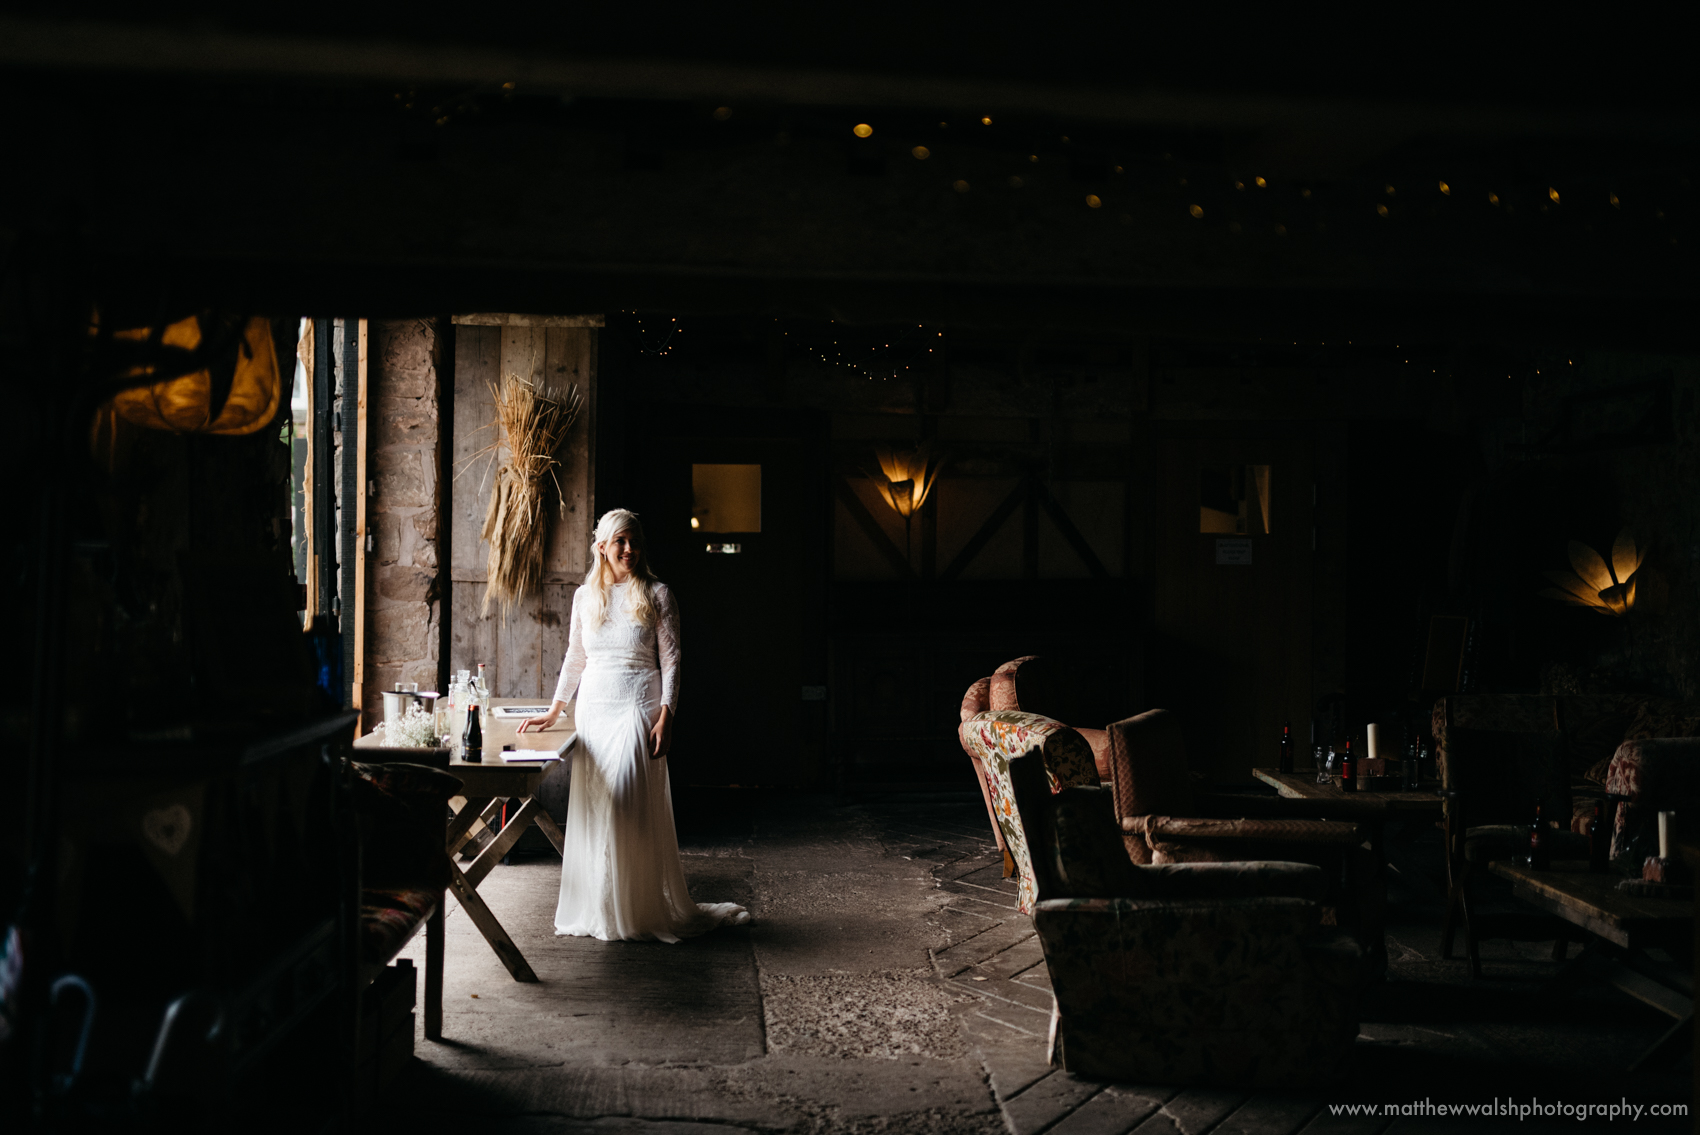 An observed moment of the bride standing by the barn entrance soaked in natural light in a perfectly exposed photograph